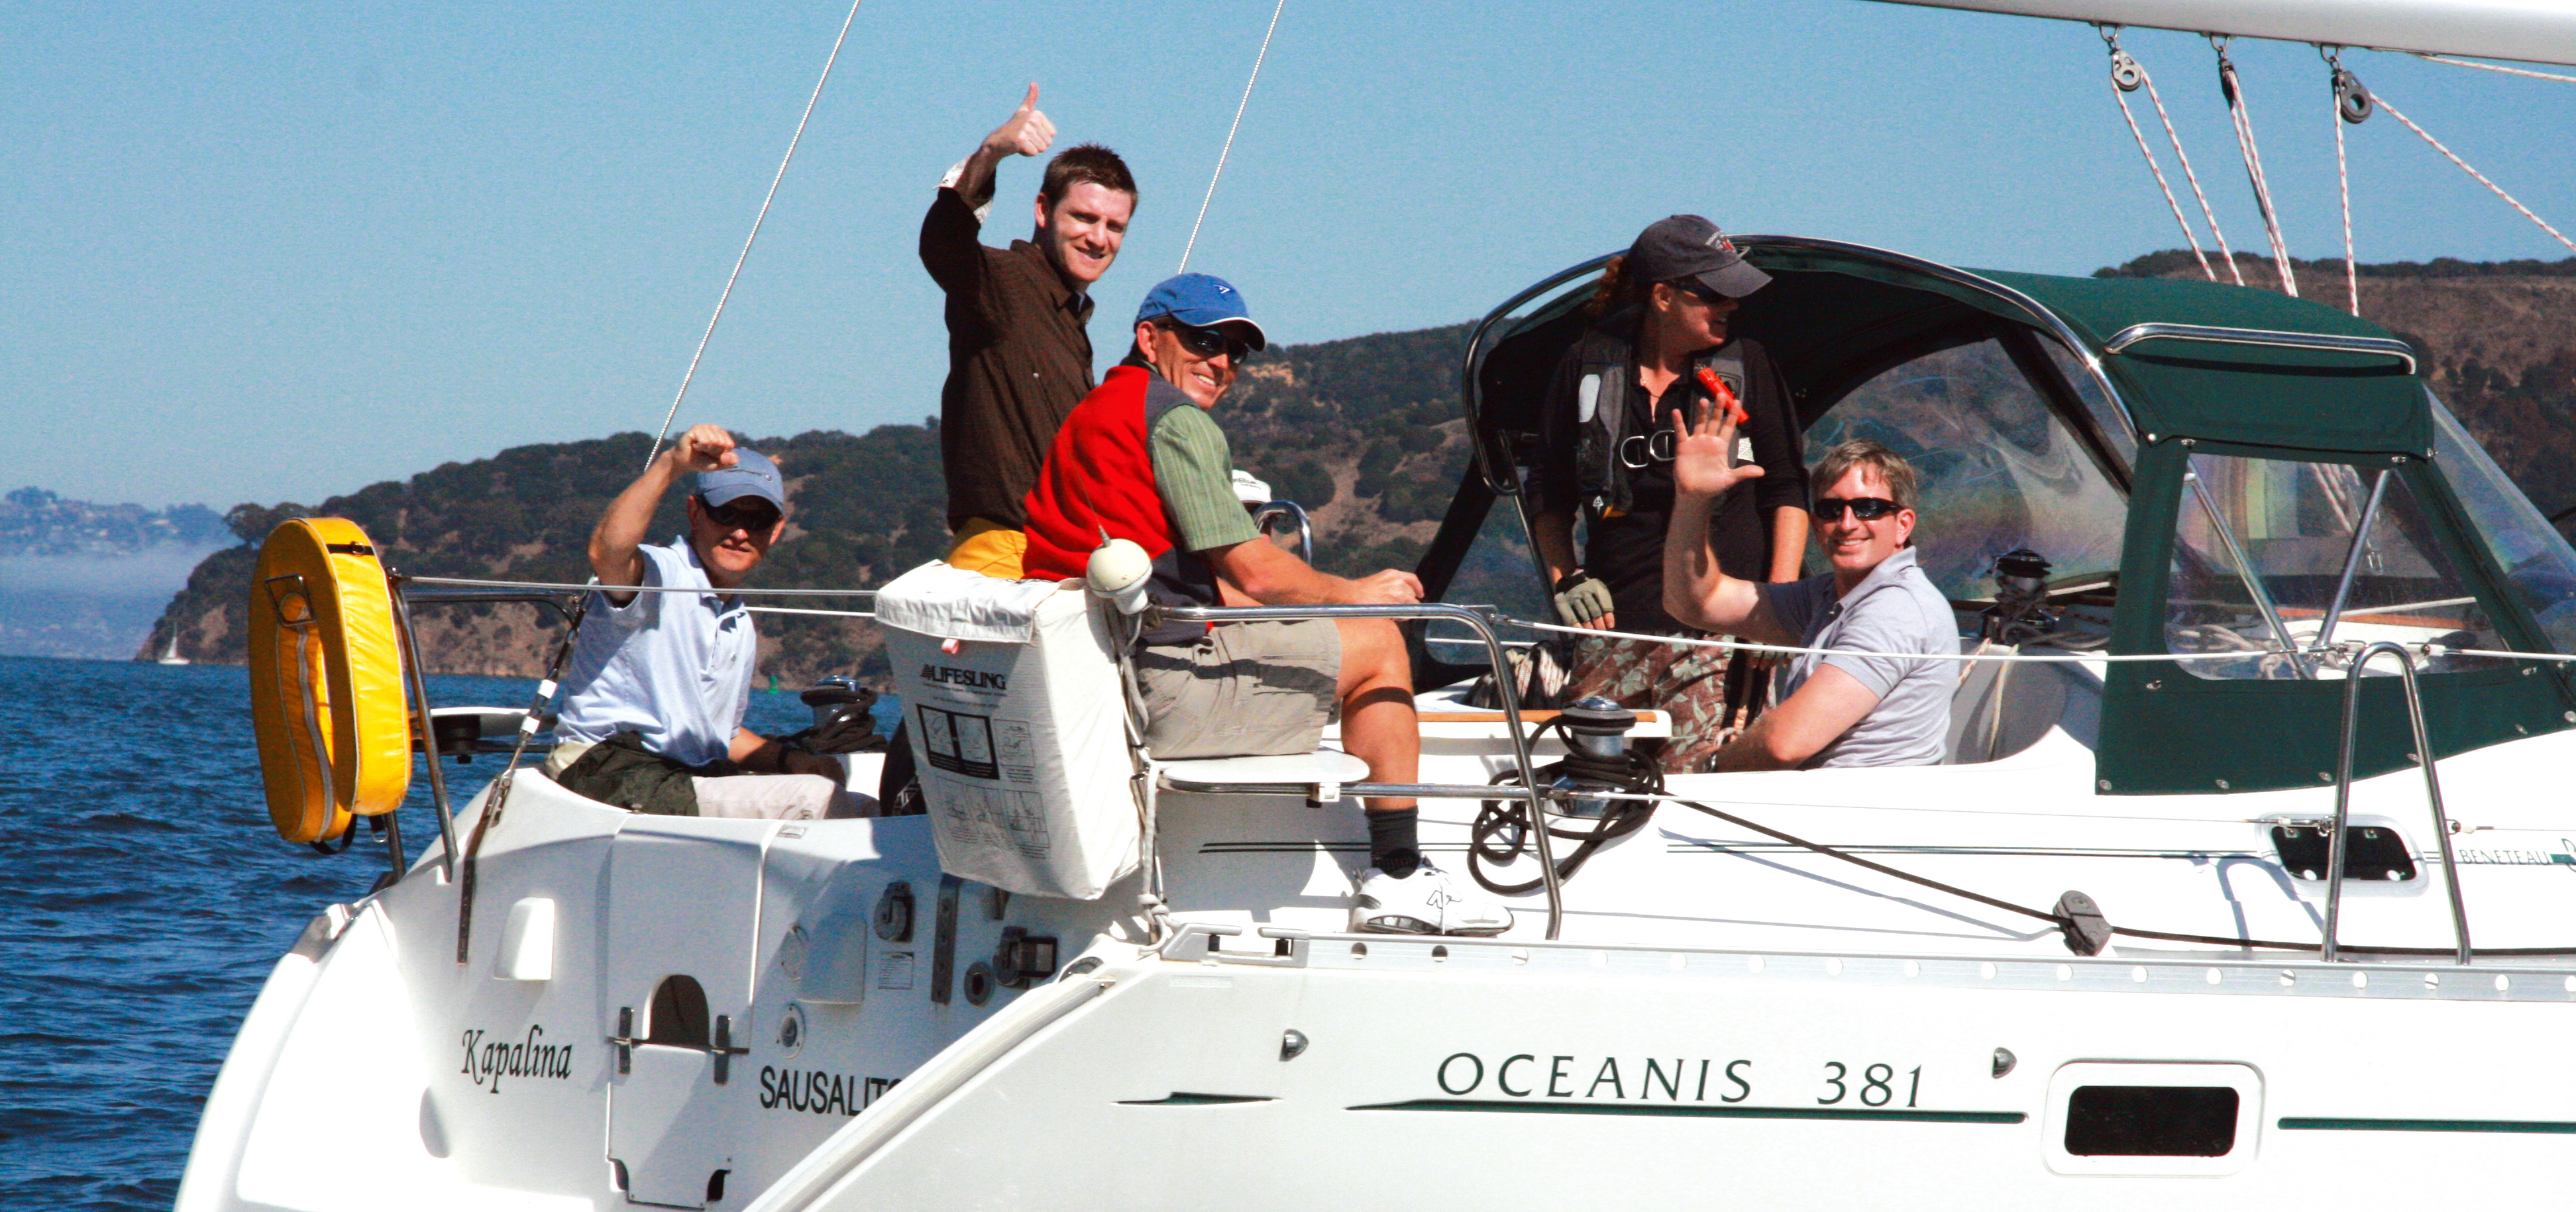 A group of sailors enjoy a hosted sail with thumbs up